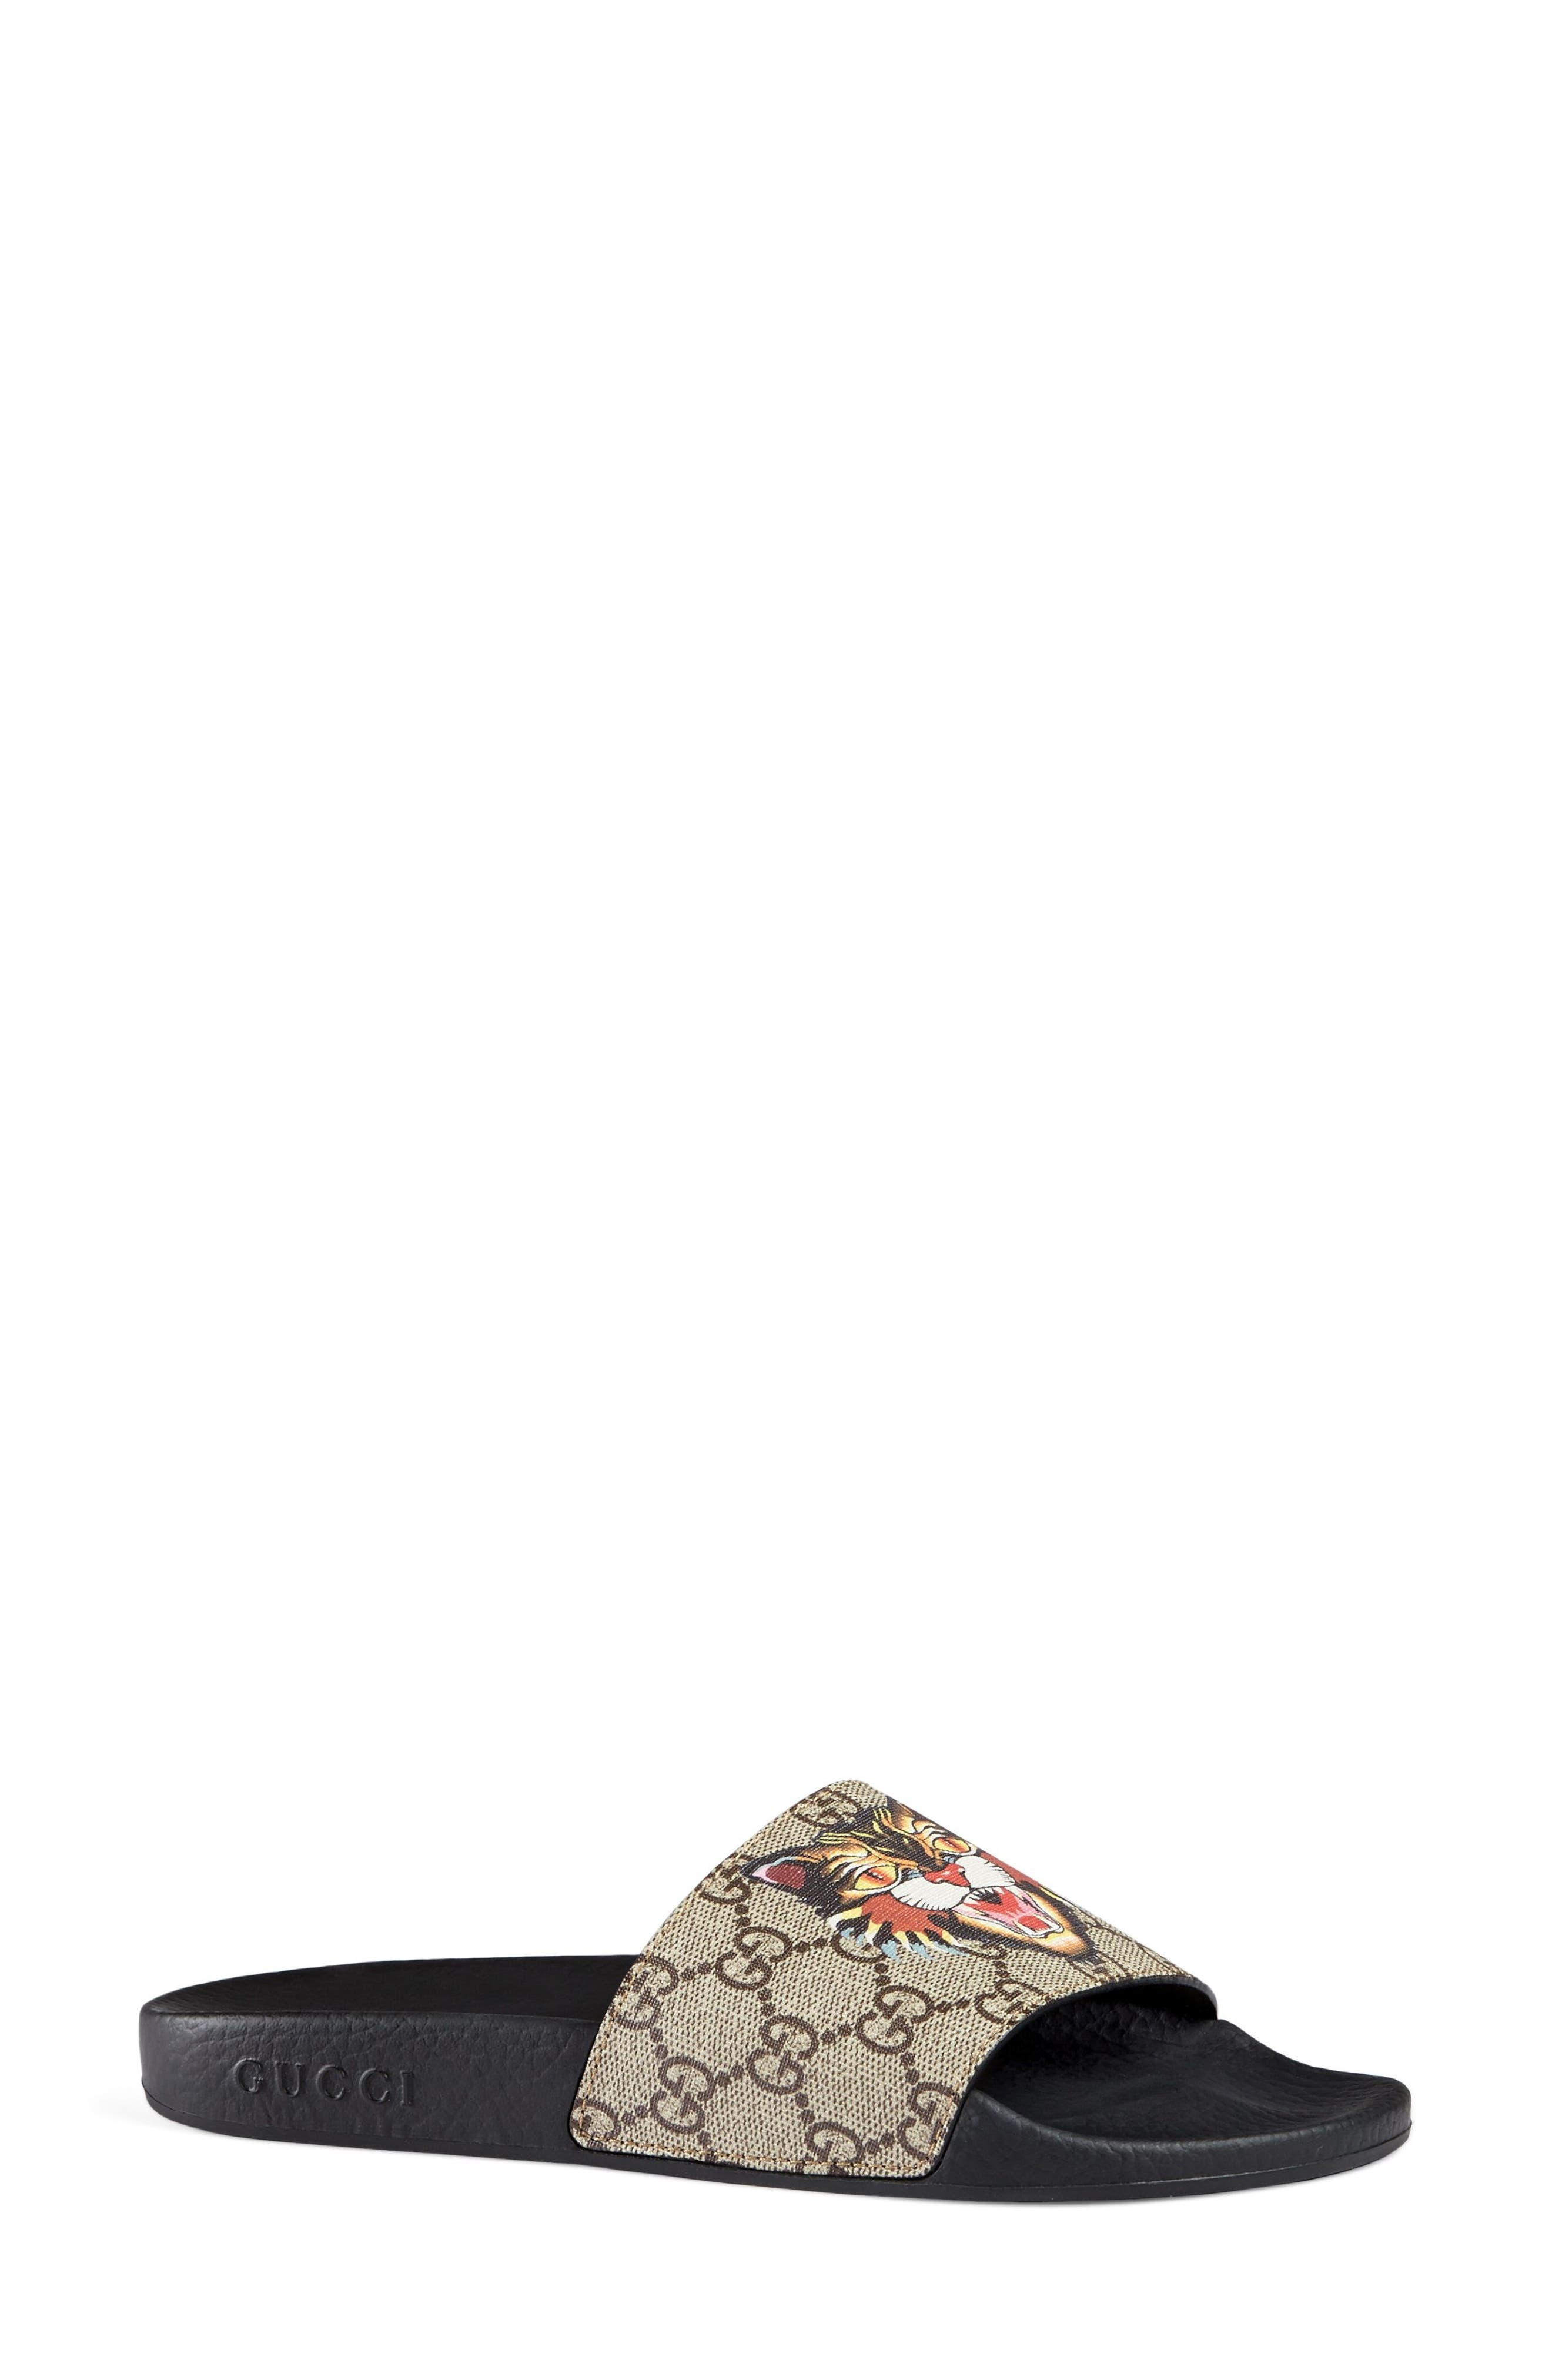 Alternate Image 3  - Gucci Pursuit Tiger Print Slide Sandal (Women)